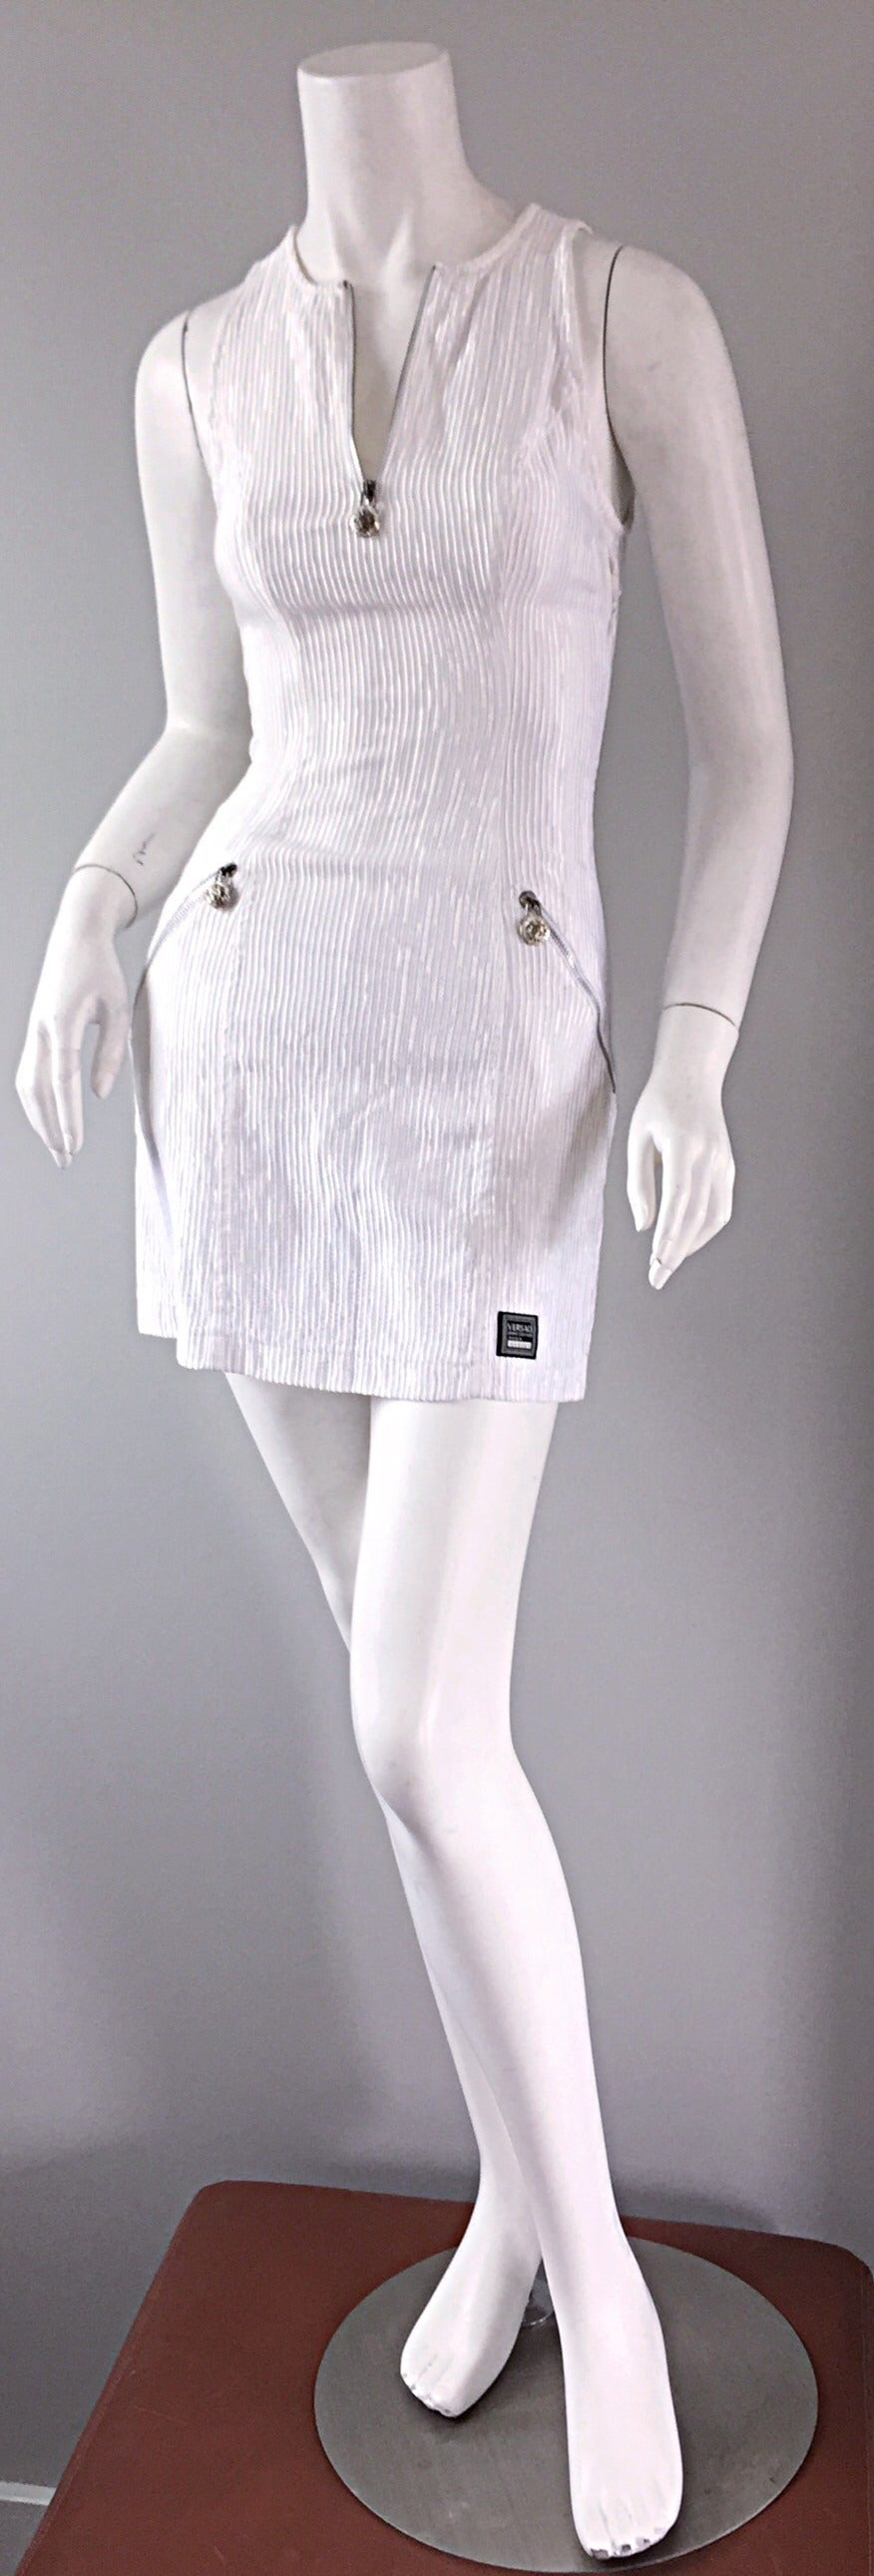 The ultimate vintage Gianni Versace pre-death bodycon dress! Stark white color, featuring Medusa zippers, encrusted with rhinestones. Ribbed detail, with a 'scuba' fit. Extremely flattering, with the option to wear the dress zipped up, or left open.